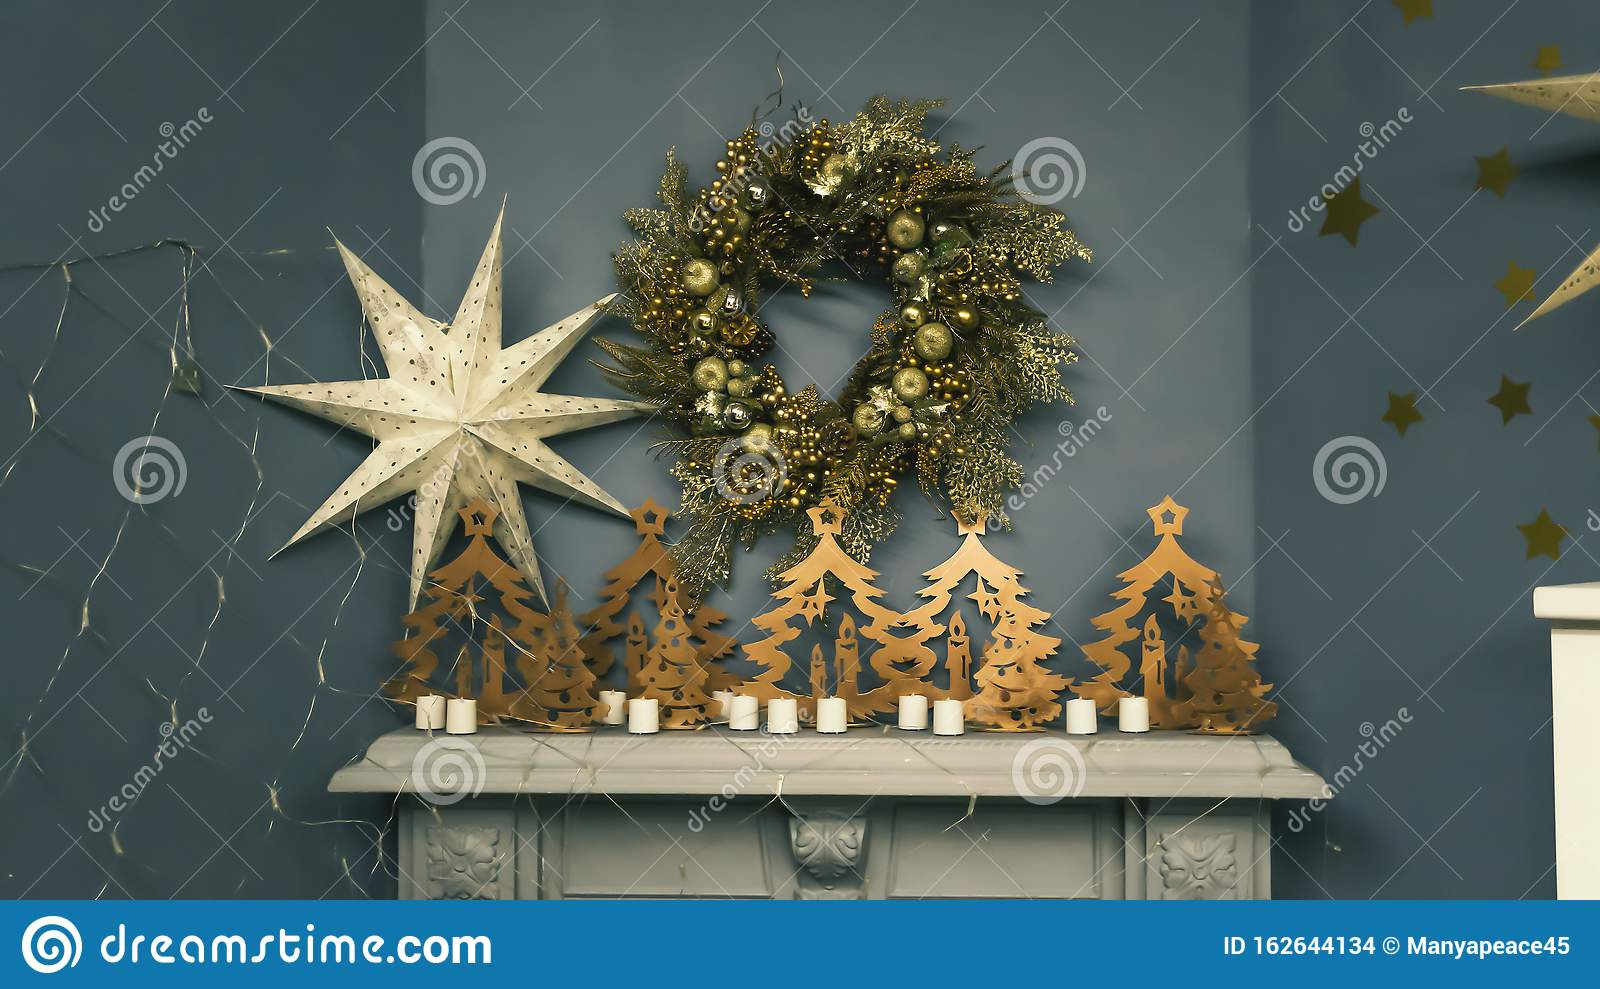 Tree White House Rustic Christmas Wood Mantelpiece Tree Topper Xmas Tree Decorations Melania Trump Selective Focus Stock Photo Image Of Home Gift 162644134